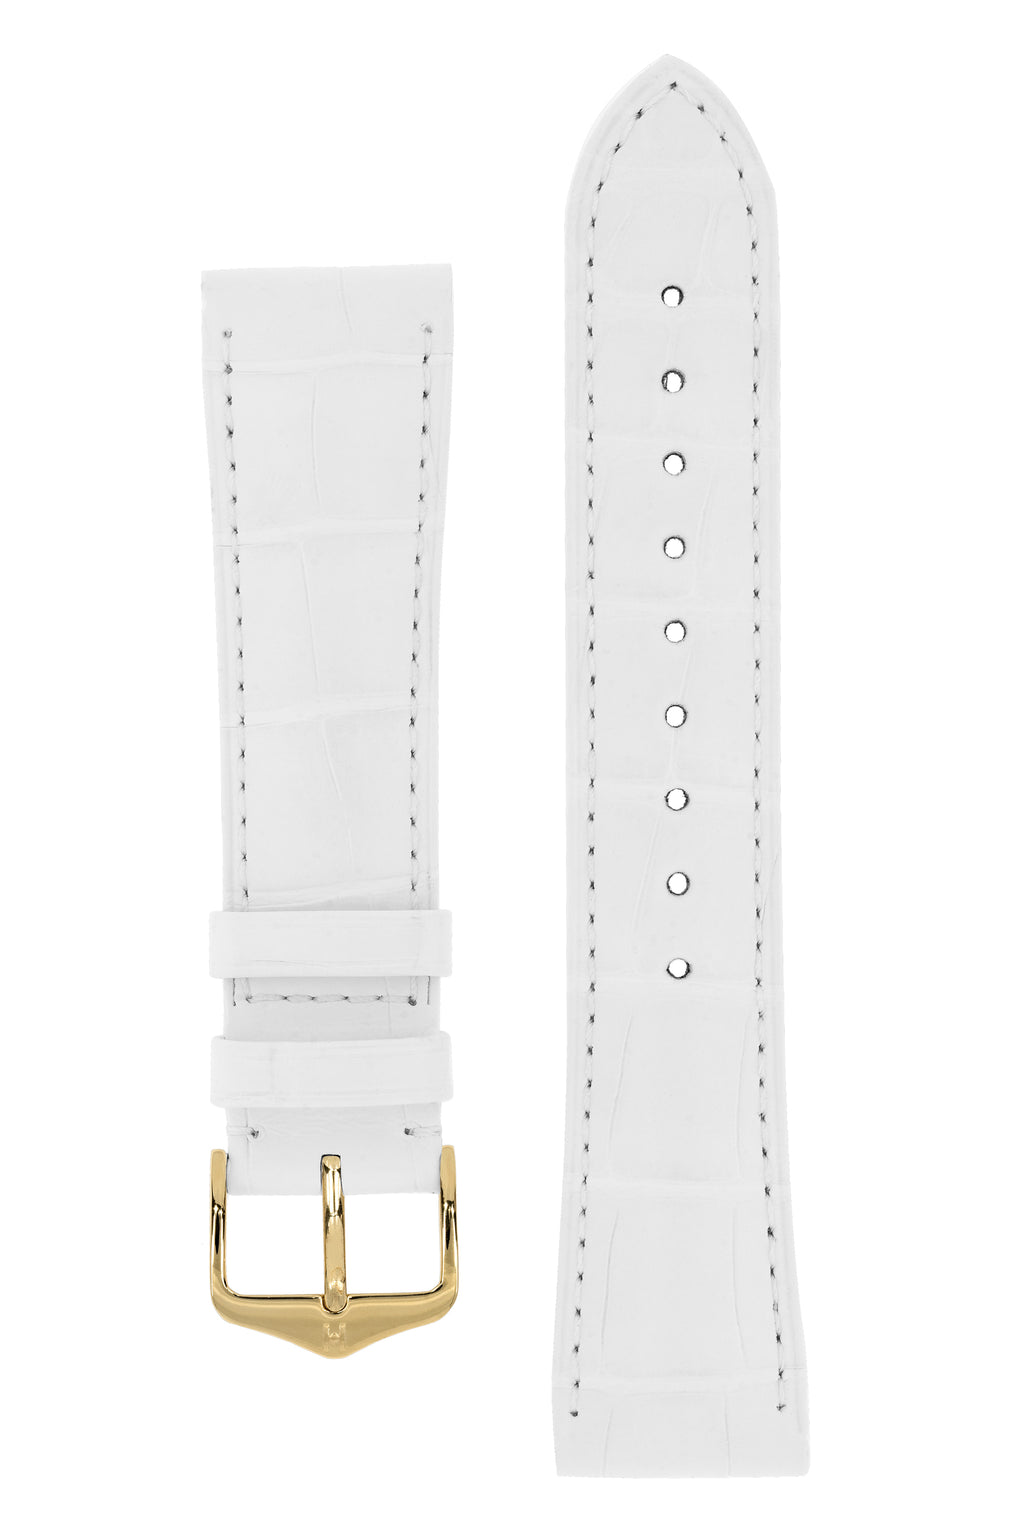 Hirsch LONDON Matt Alligator Leather Watch Strap in WHITE